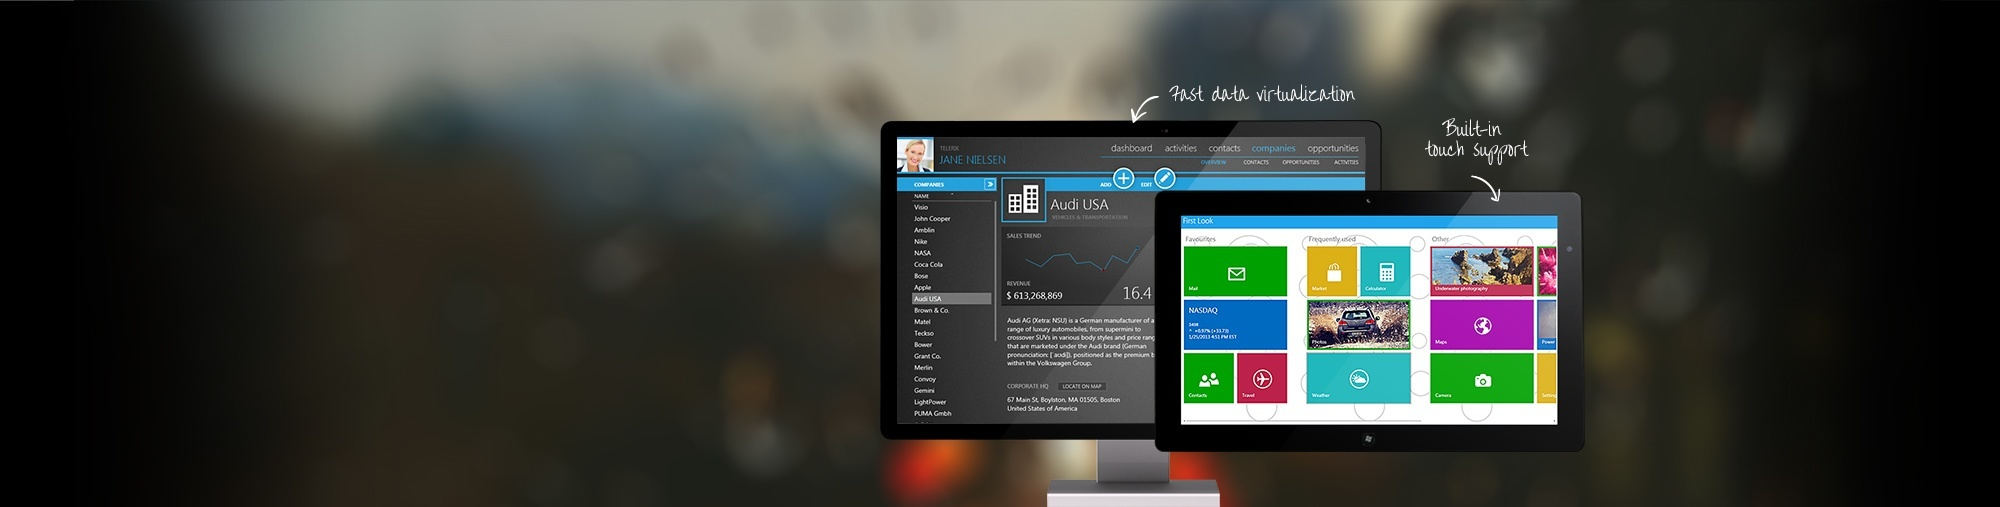 UI for Silverlight